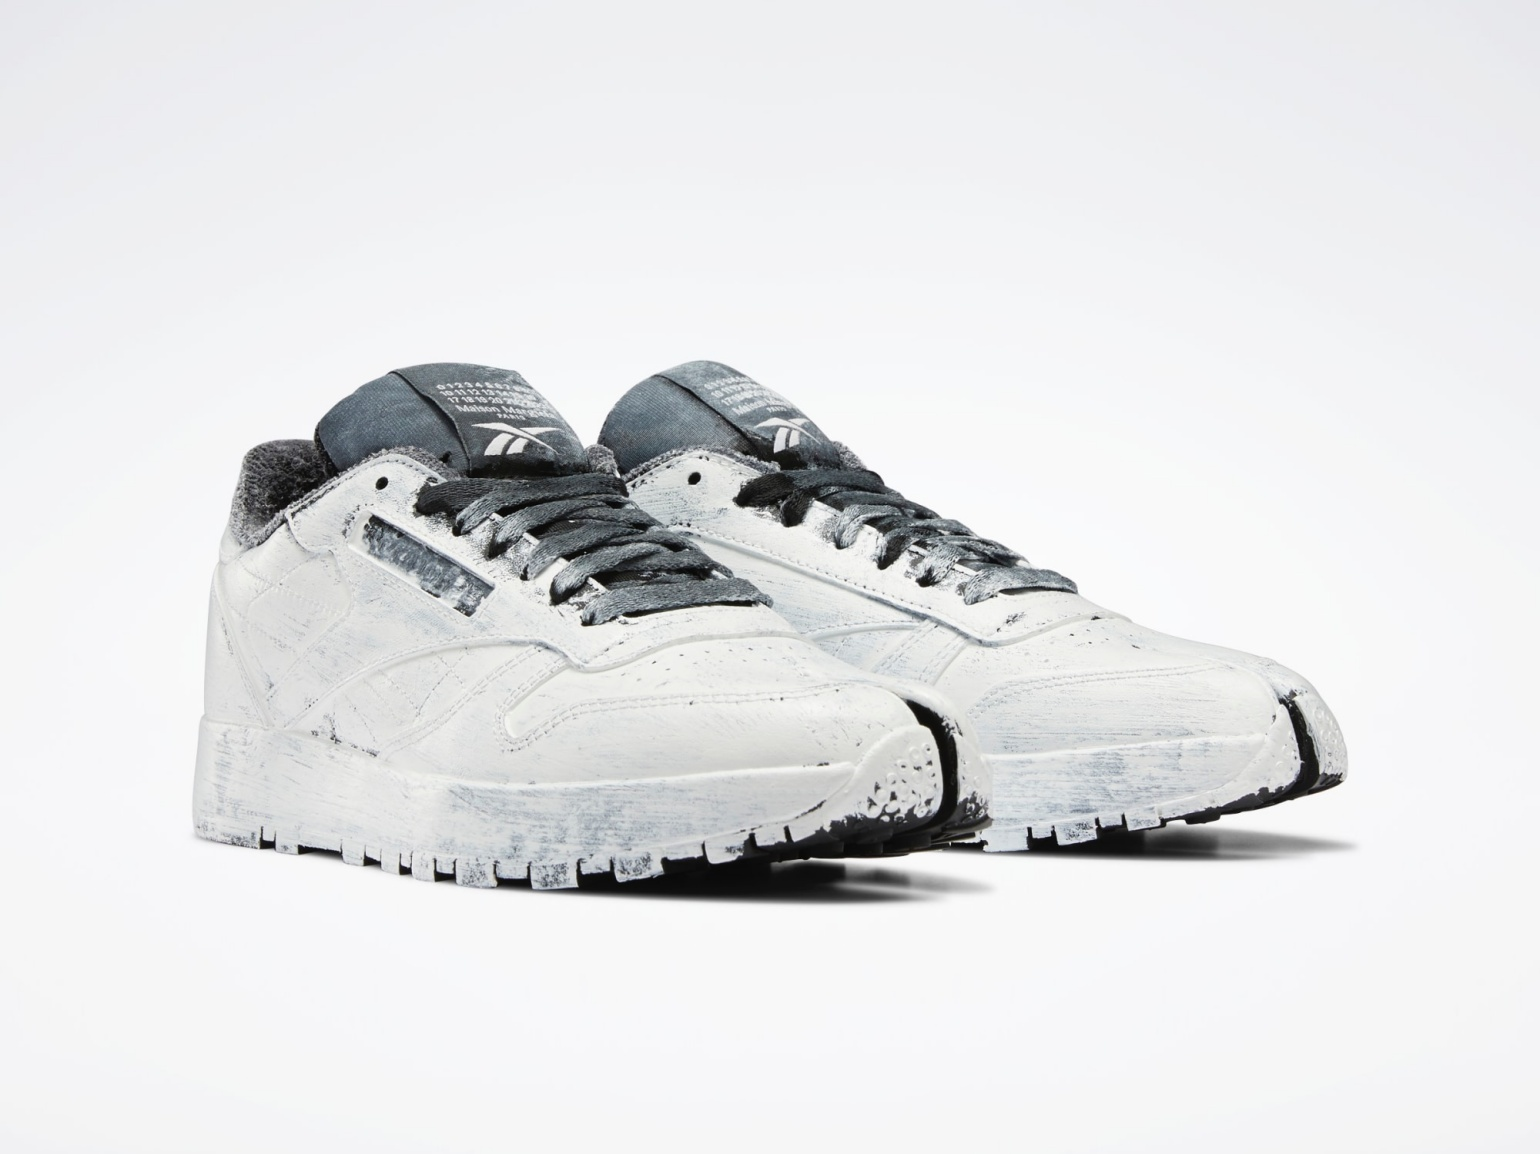 maison-margiela-reebok-tabi-sneakers-limited-edition-trainers-collaboration